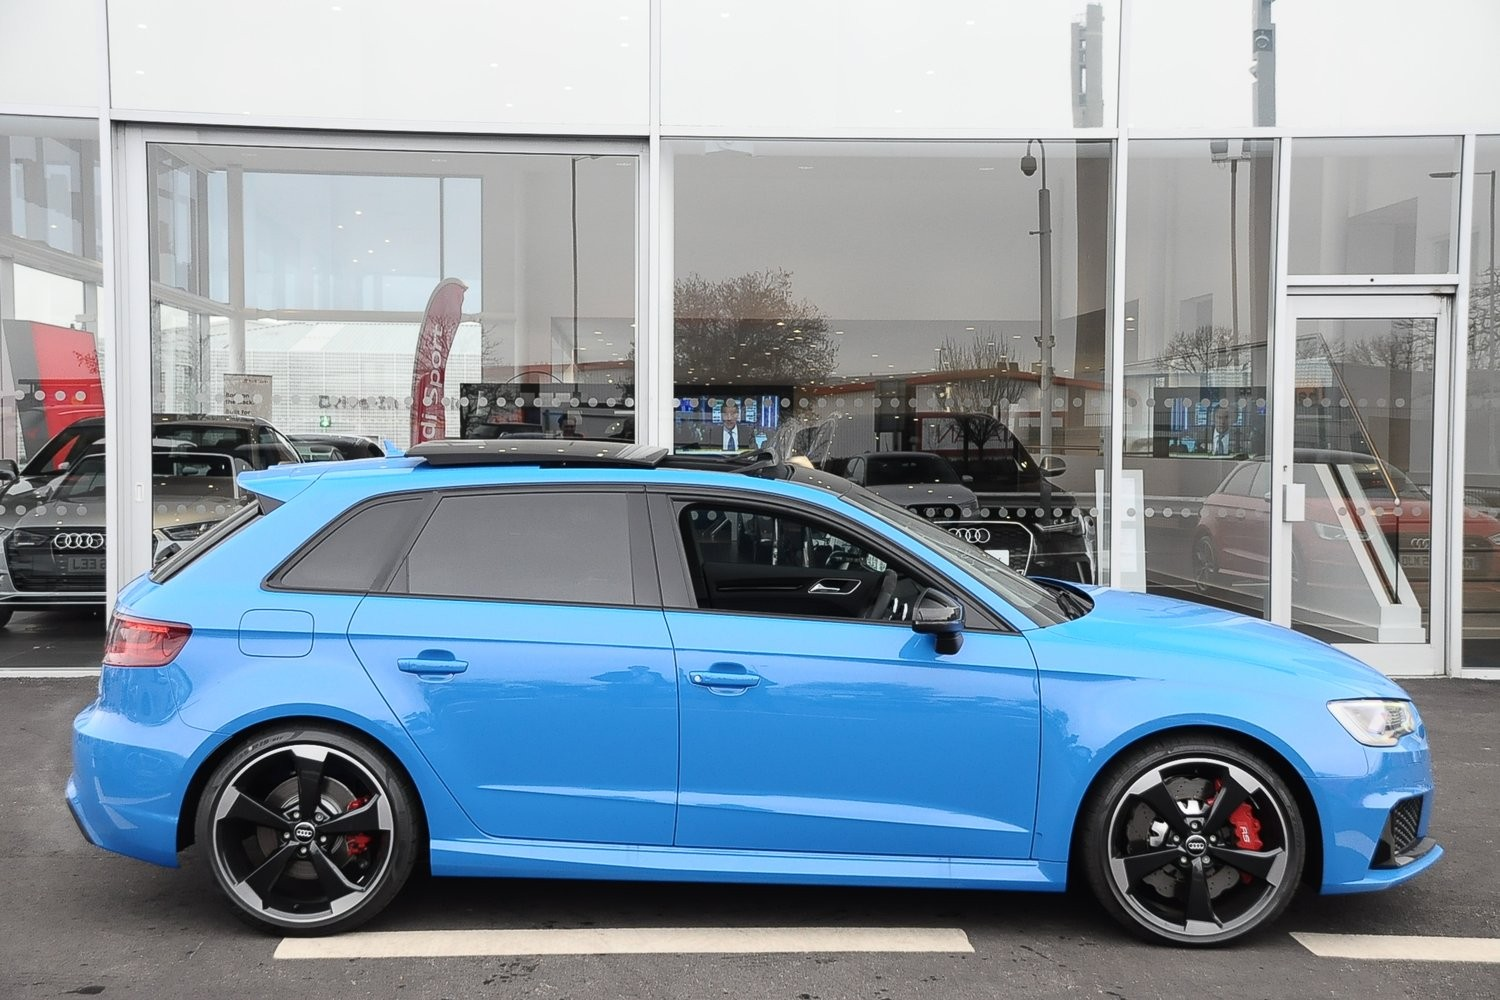 Colour a car - Porsche Voodoo Blue Its Gotta Be The Most Blingy Paint Colour Out There In Audi Land Its A Light Blue Pearlescent Paint Stunning L Think With A